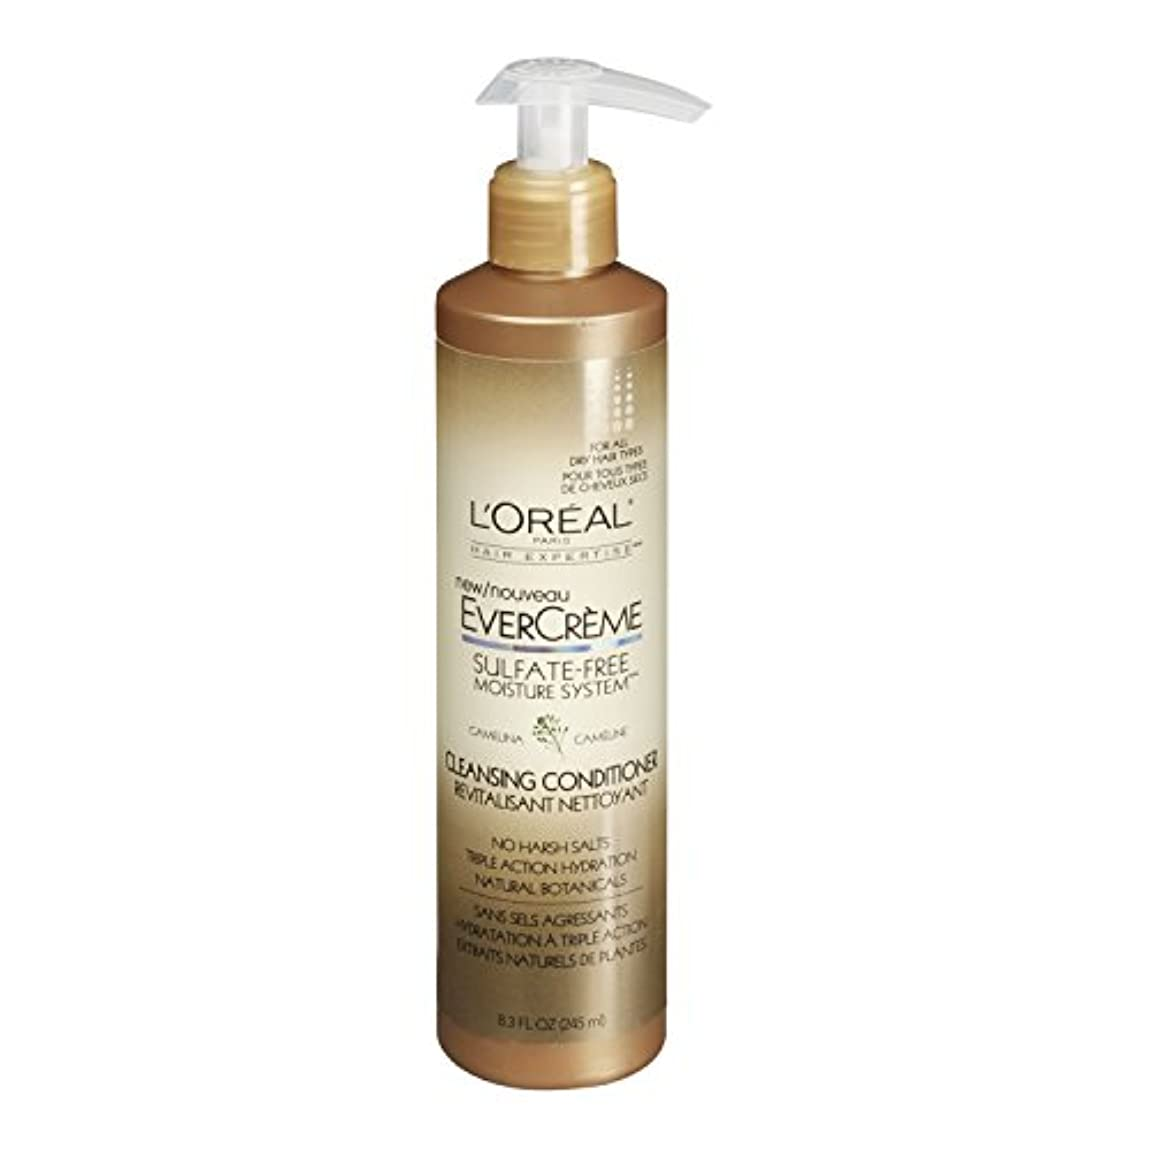 メッセンジャーサッカースープL'Oreal Paris EverCreme Sulfate-Free Moisture System Cleansing Conditioner, 8.3 fl. Oz. by L'Oreal Paris Hair Care [並行輸入品]